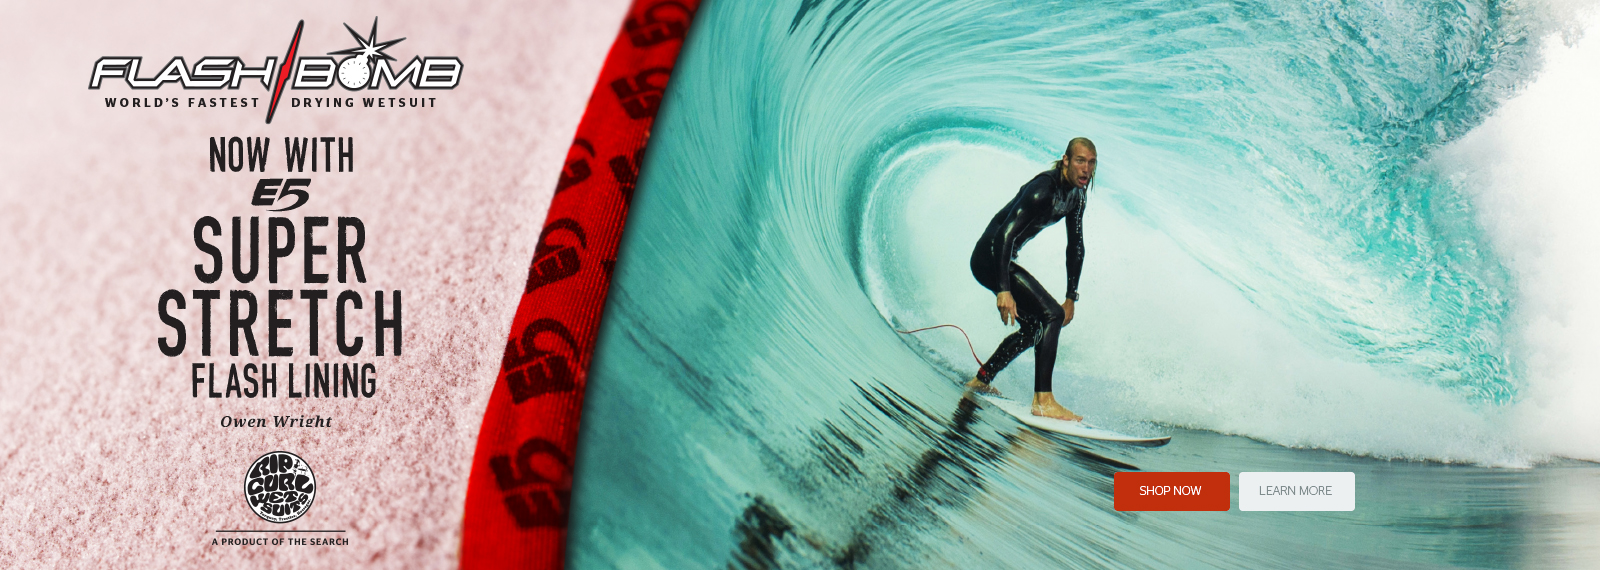 homepage-wetsuit-FW